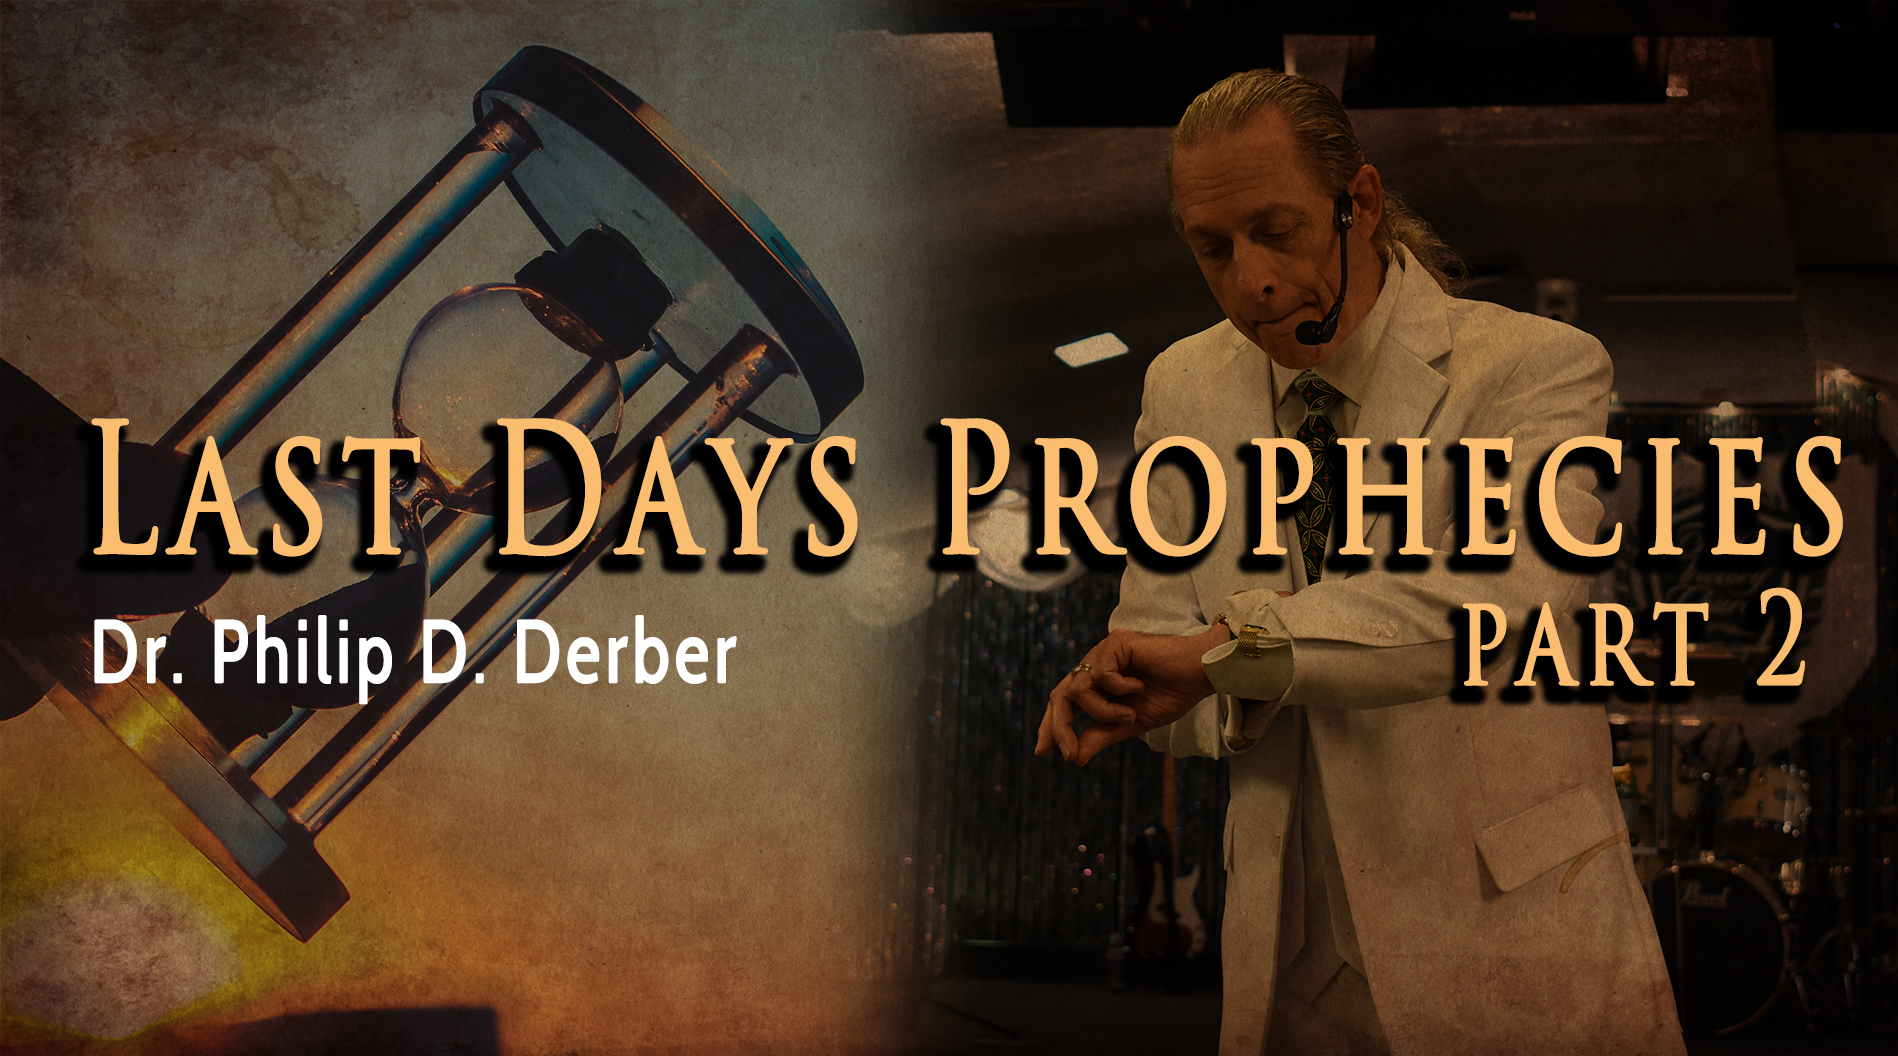 Last Days Prophecies 2